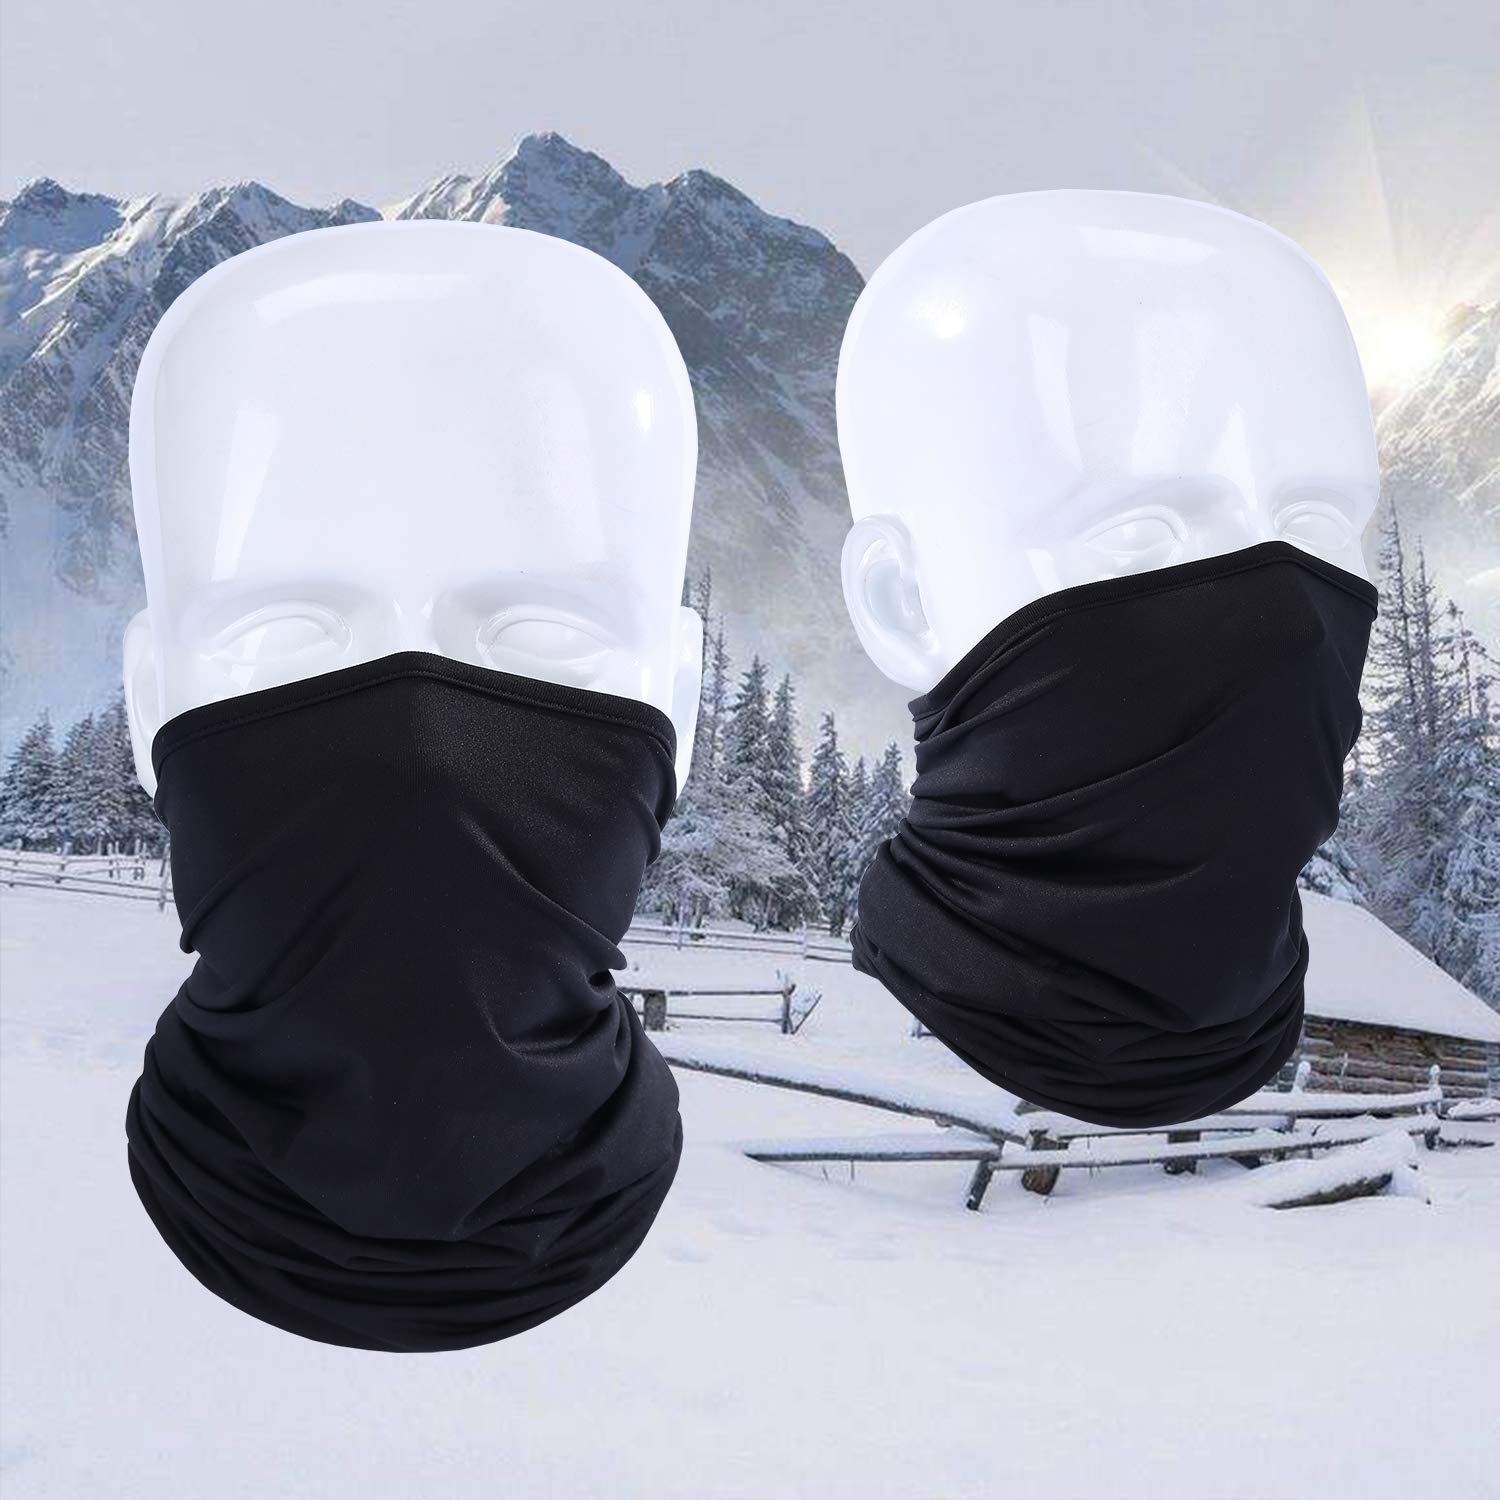 Lightweight and Breathable 2 Pack or 2 Pack Cycling Motorcycling Running Skateboarding Any Outdoor Sports LUVNFUN Neck Gaiter for Men Women Half Face Mask for Dust